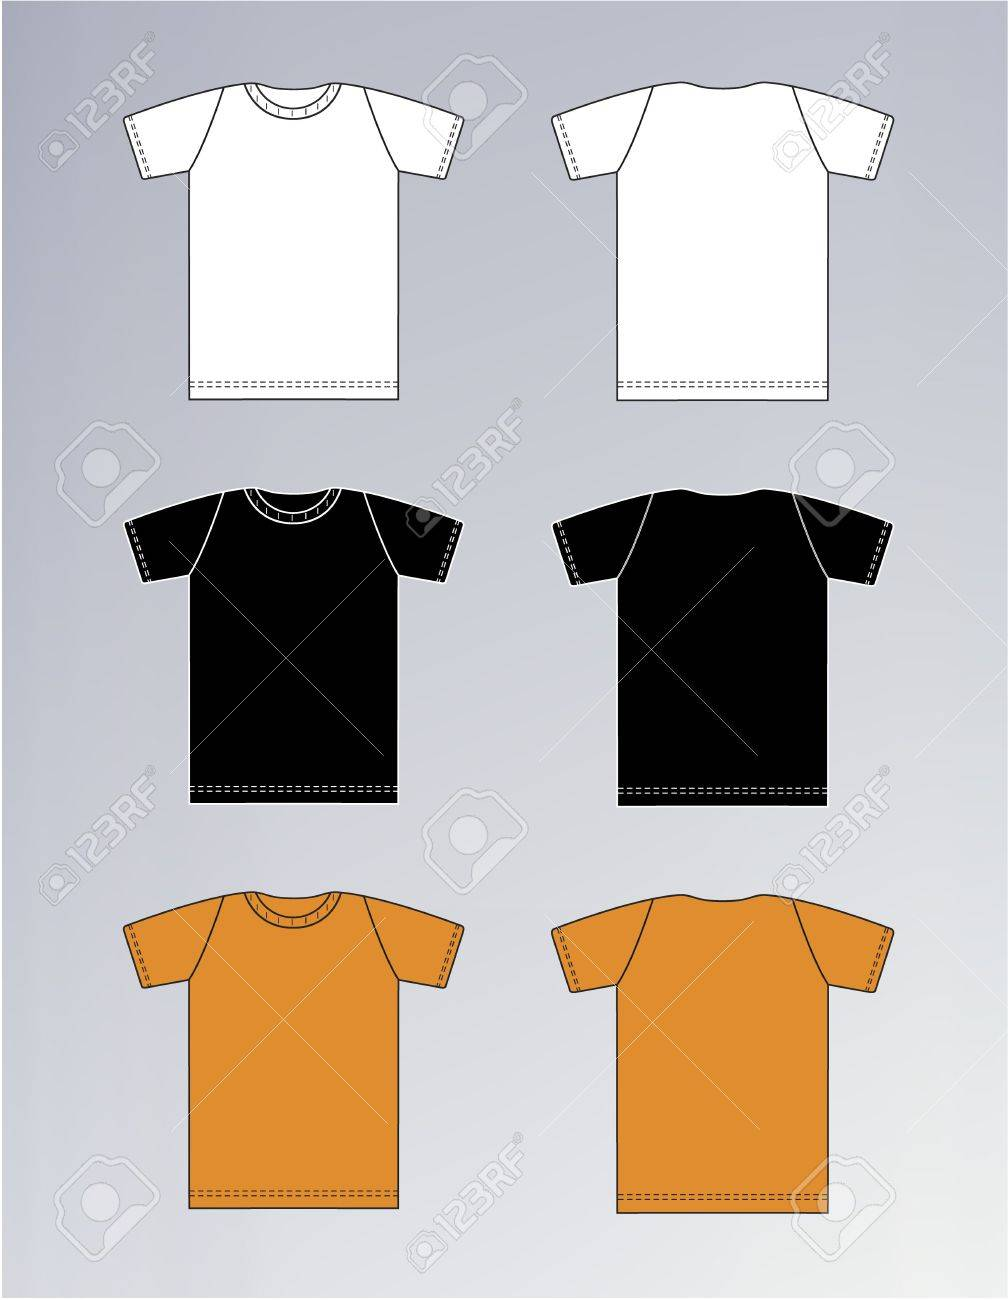 White t shirt front and back template - White Black Orange T Shirt Design Templates Front Back Stock